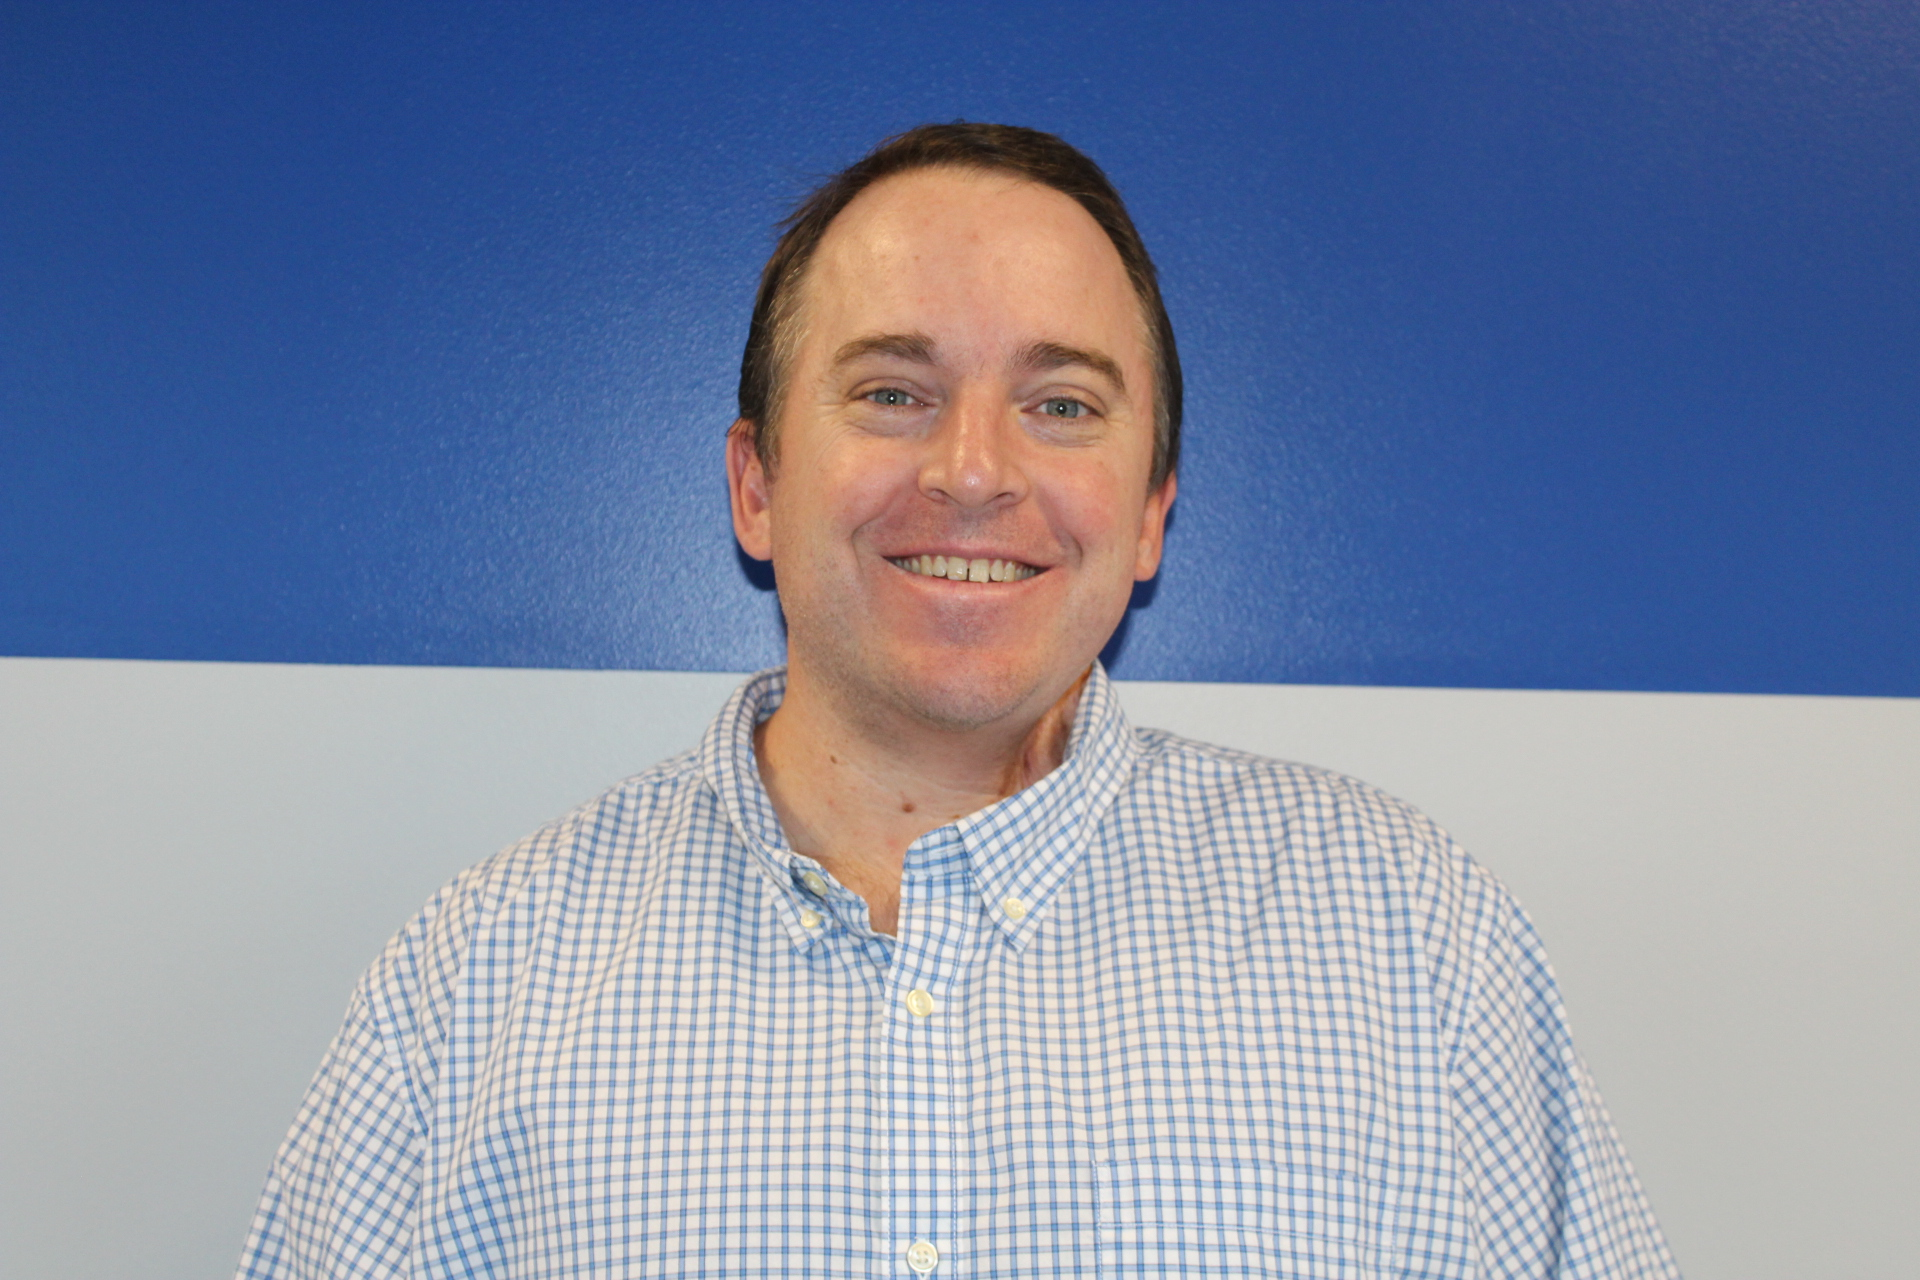 Jeff Johnson - Financial Controller - Jeff has been with Starr since 2018 as financial controller. While he has…READ MORE